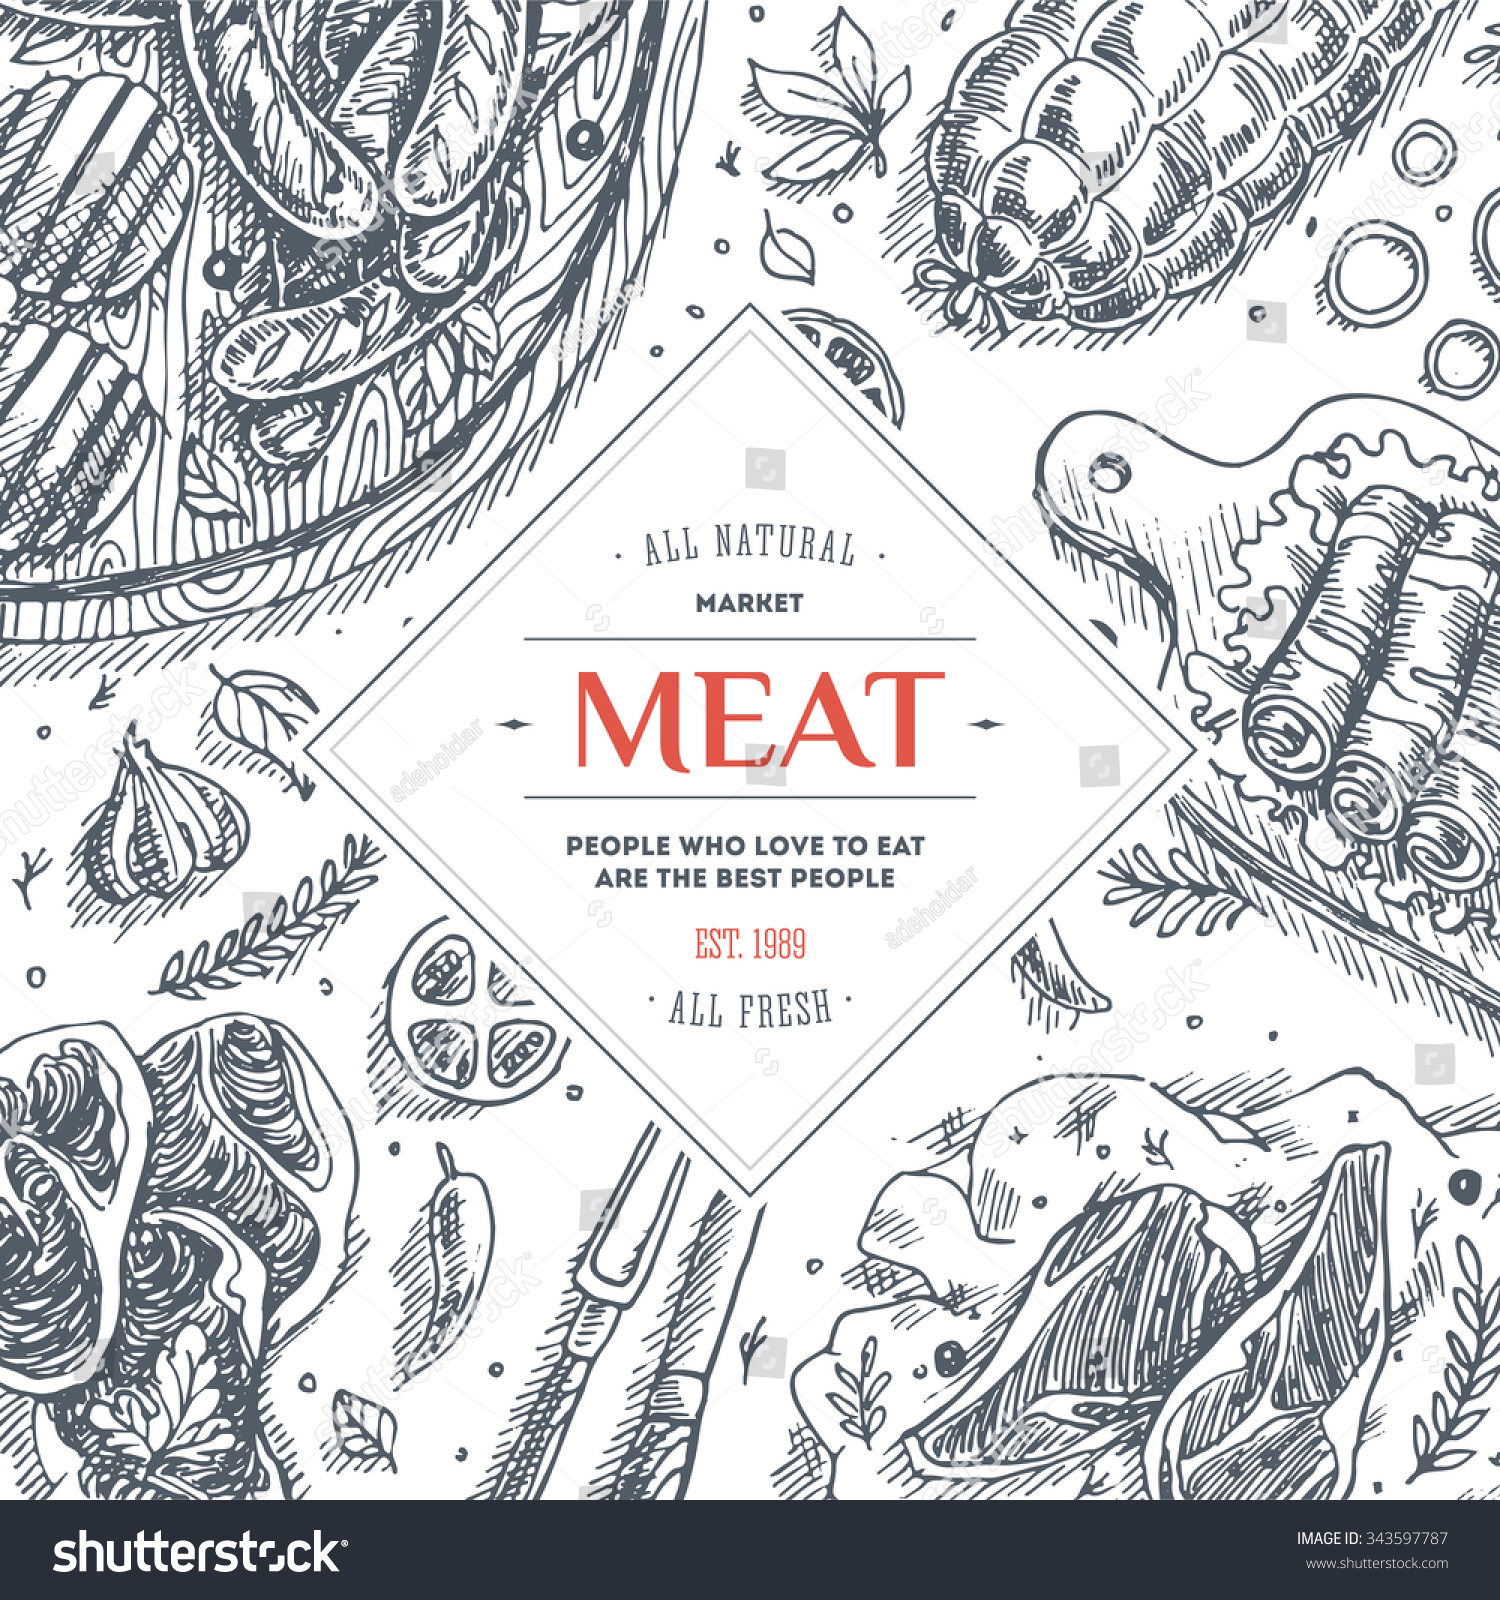 Meat Market Frame Linear Graphic Top Stock Vector (Royalty Free ...